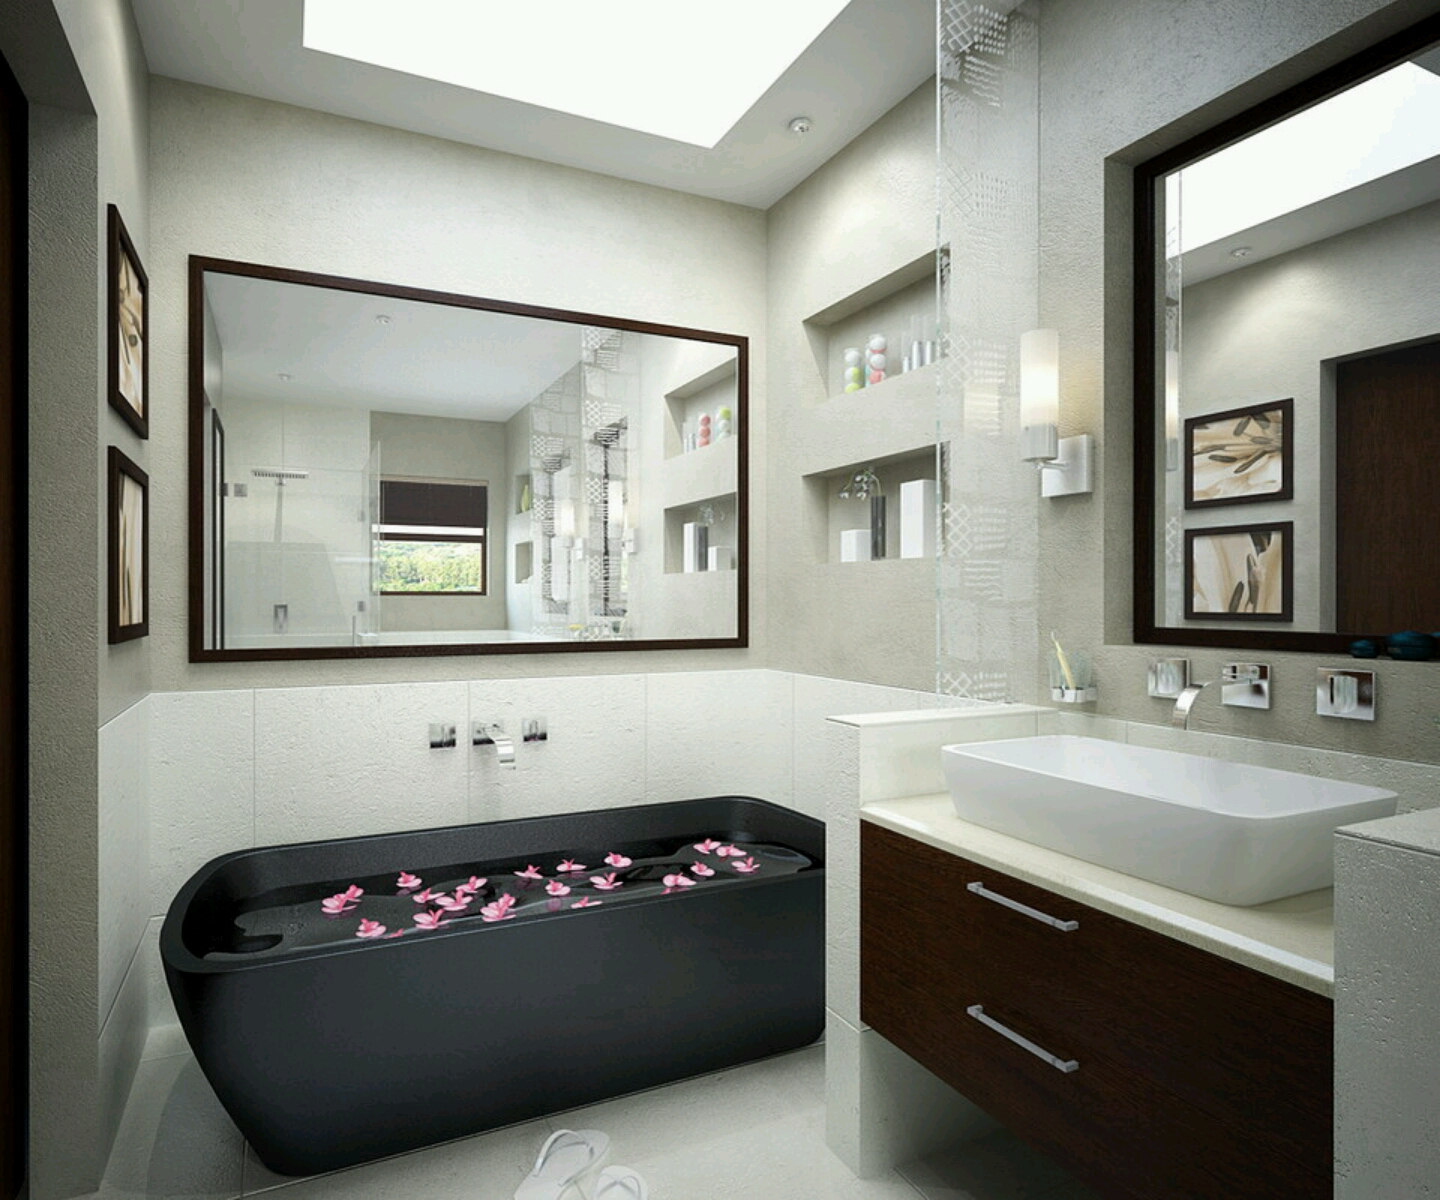 Modern bathrooms cabinets designs furniture gallery Contemporary bathrooms